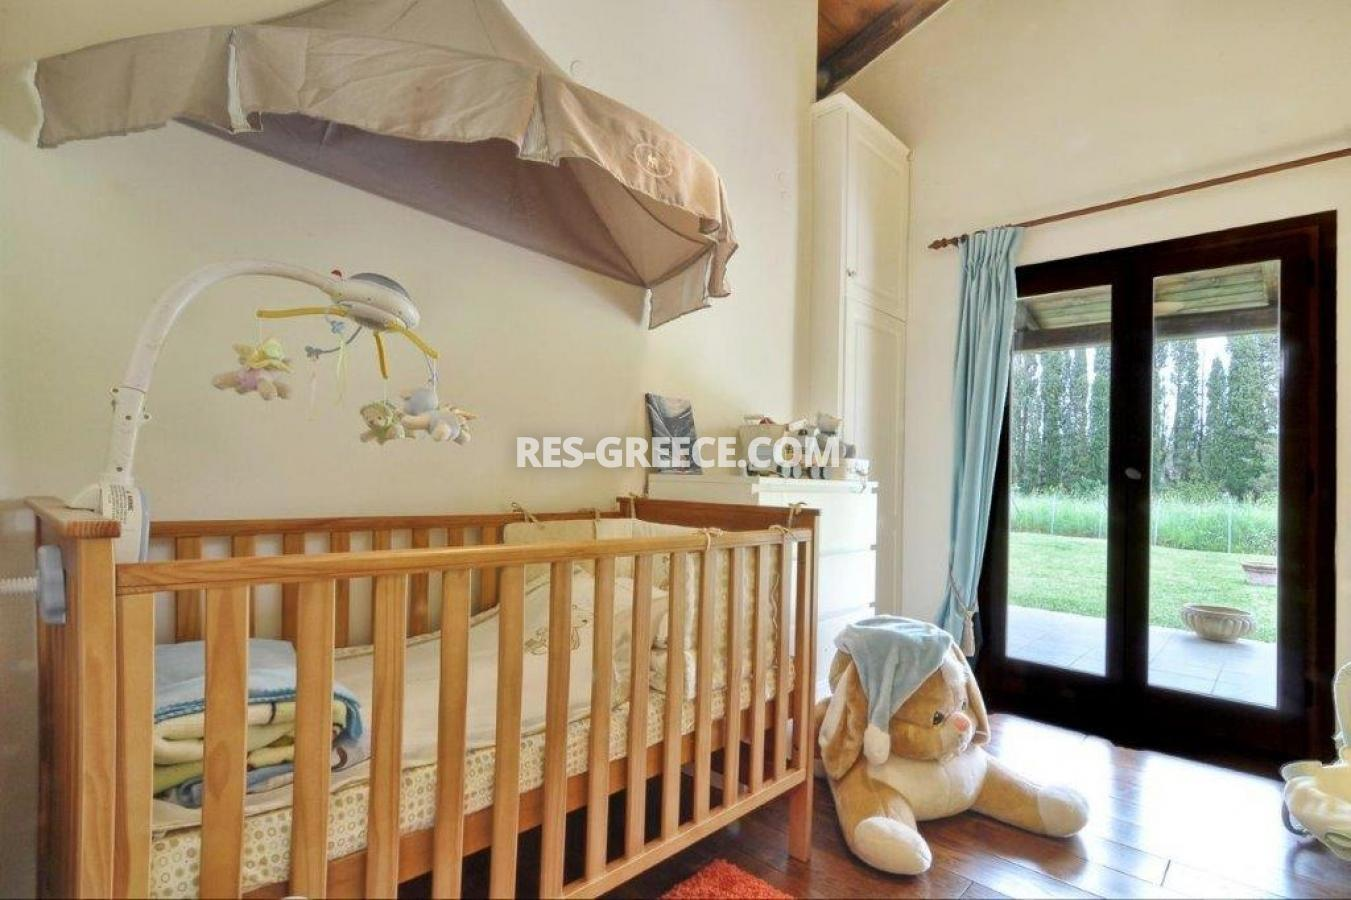 Poulades, Ionian Islands, Greece - Mediterranean bungalow for sale in Corfu - Photo 9